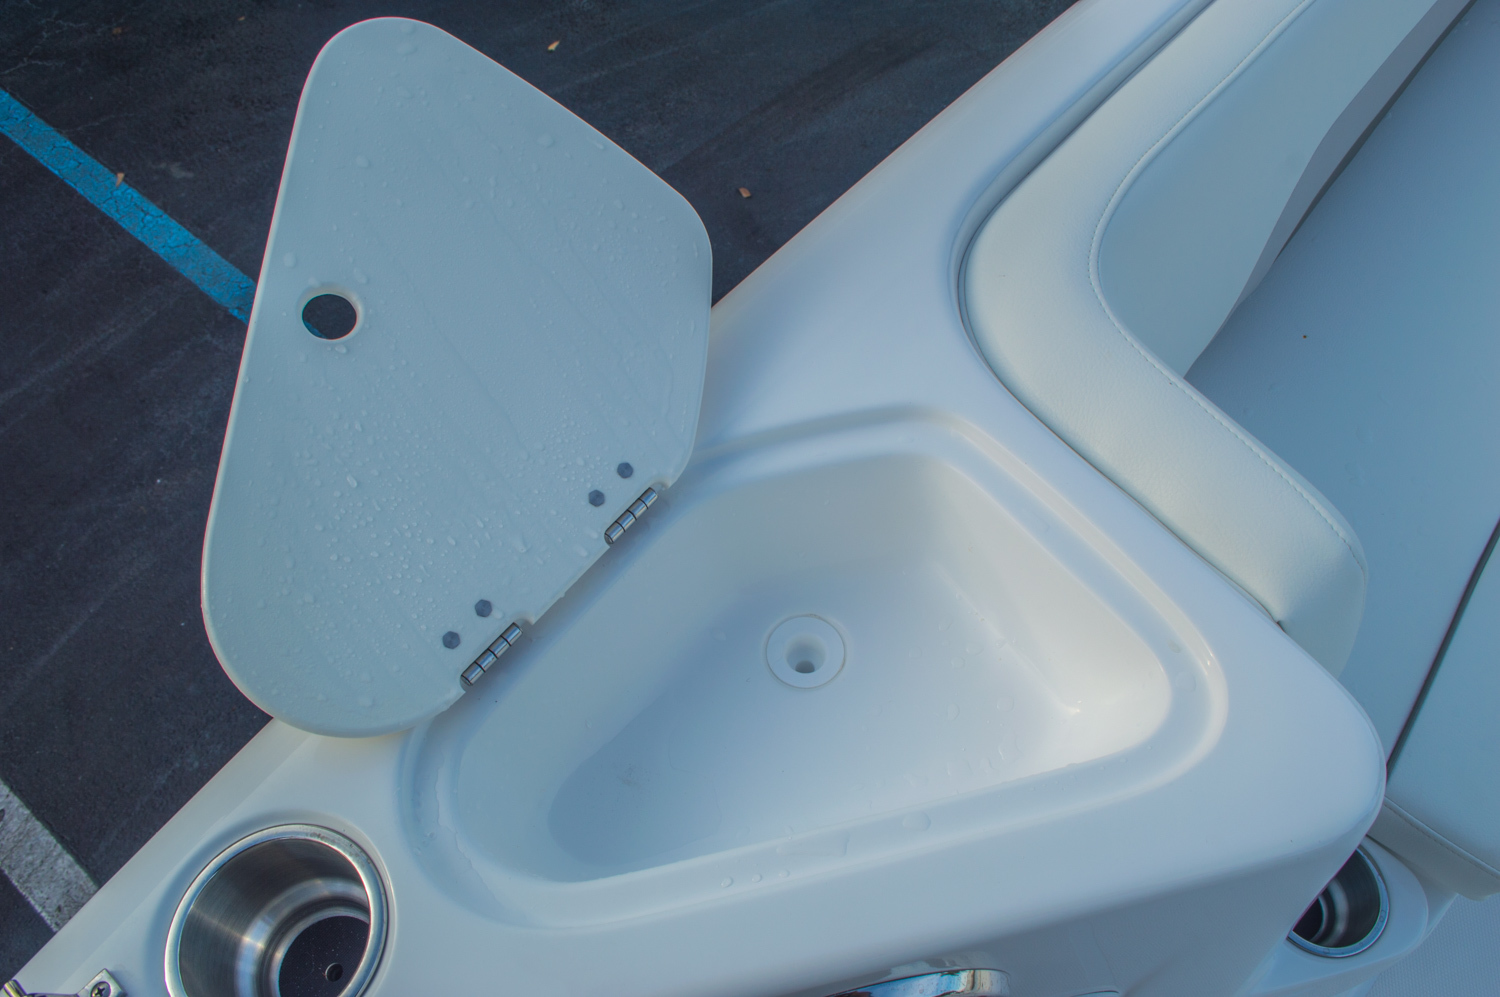 Thumbnail 36 for New 2016 Hurricane CC211 Center Consle boat for sale in West Palm Beach, FL